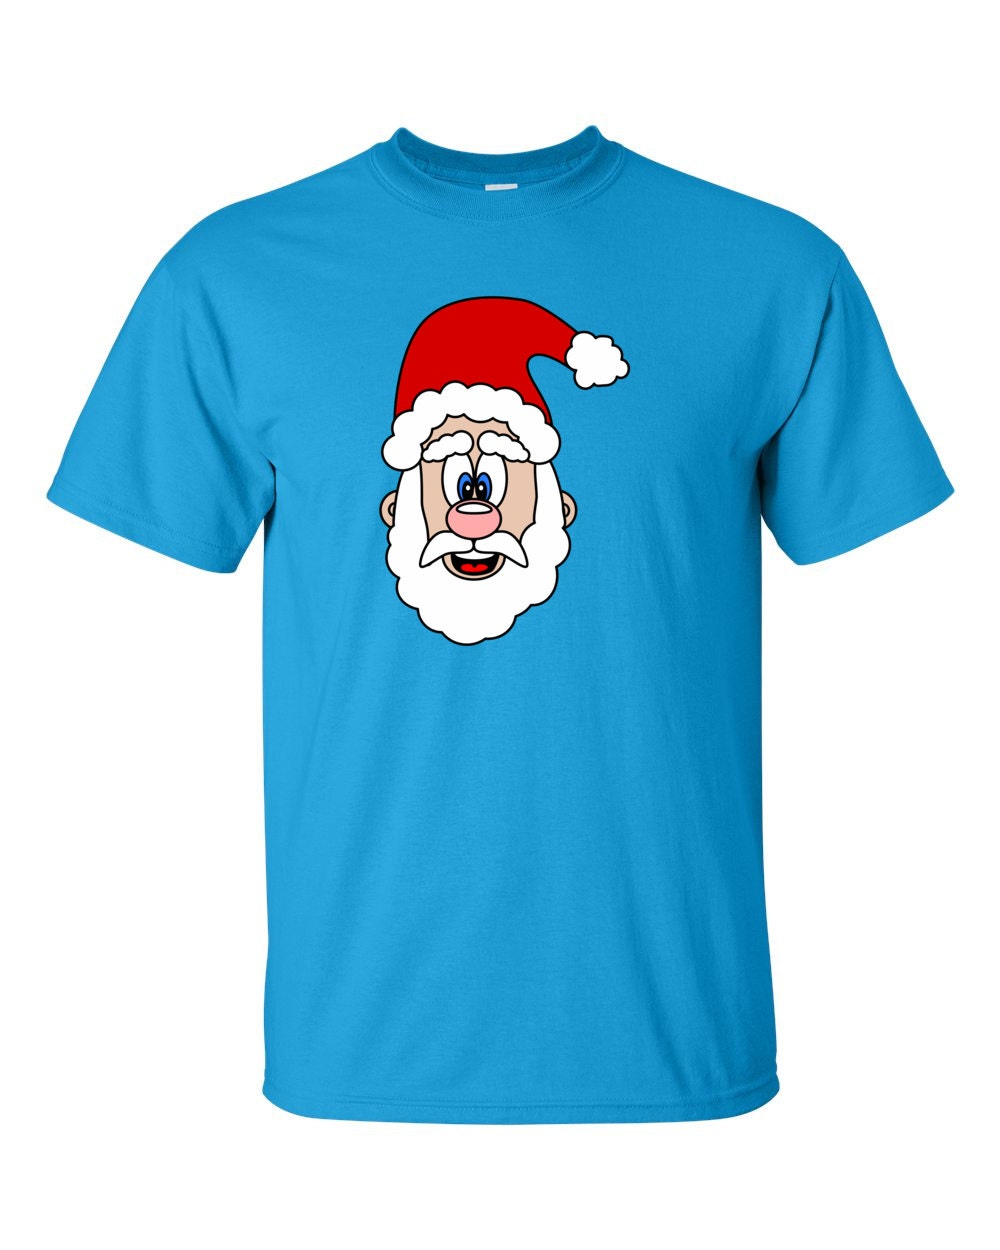 Christmas Shirt - Cute Santa Claus Christmas T-shirt